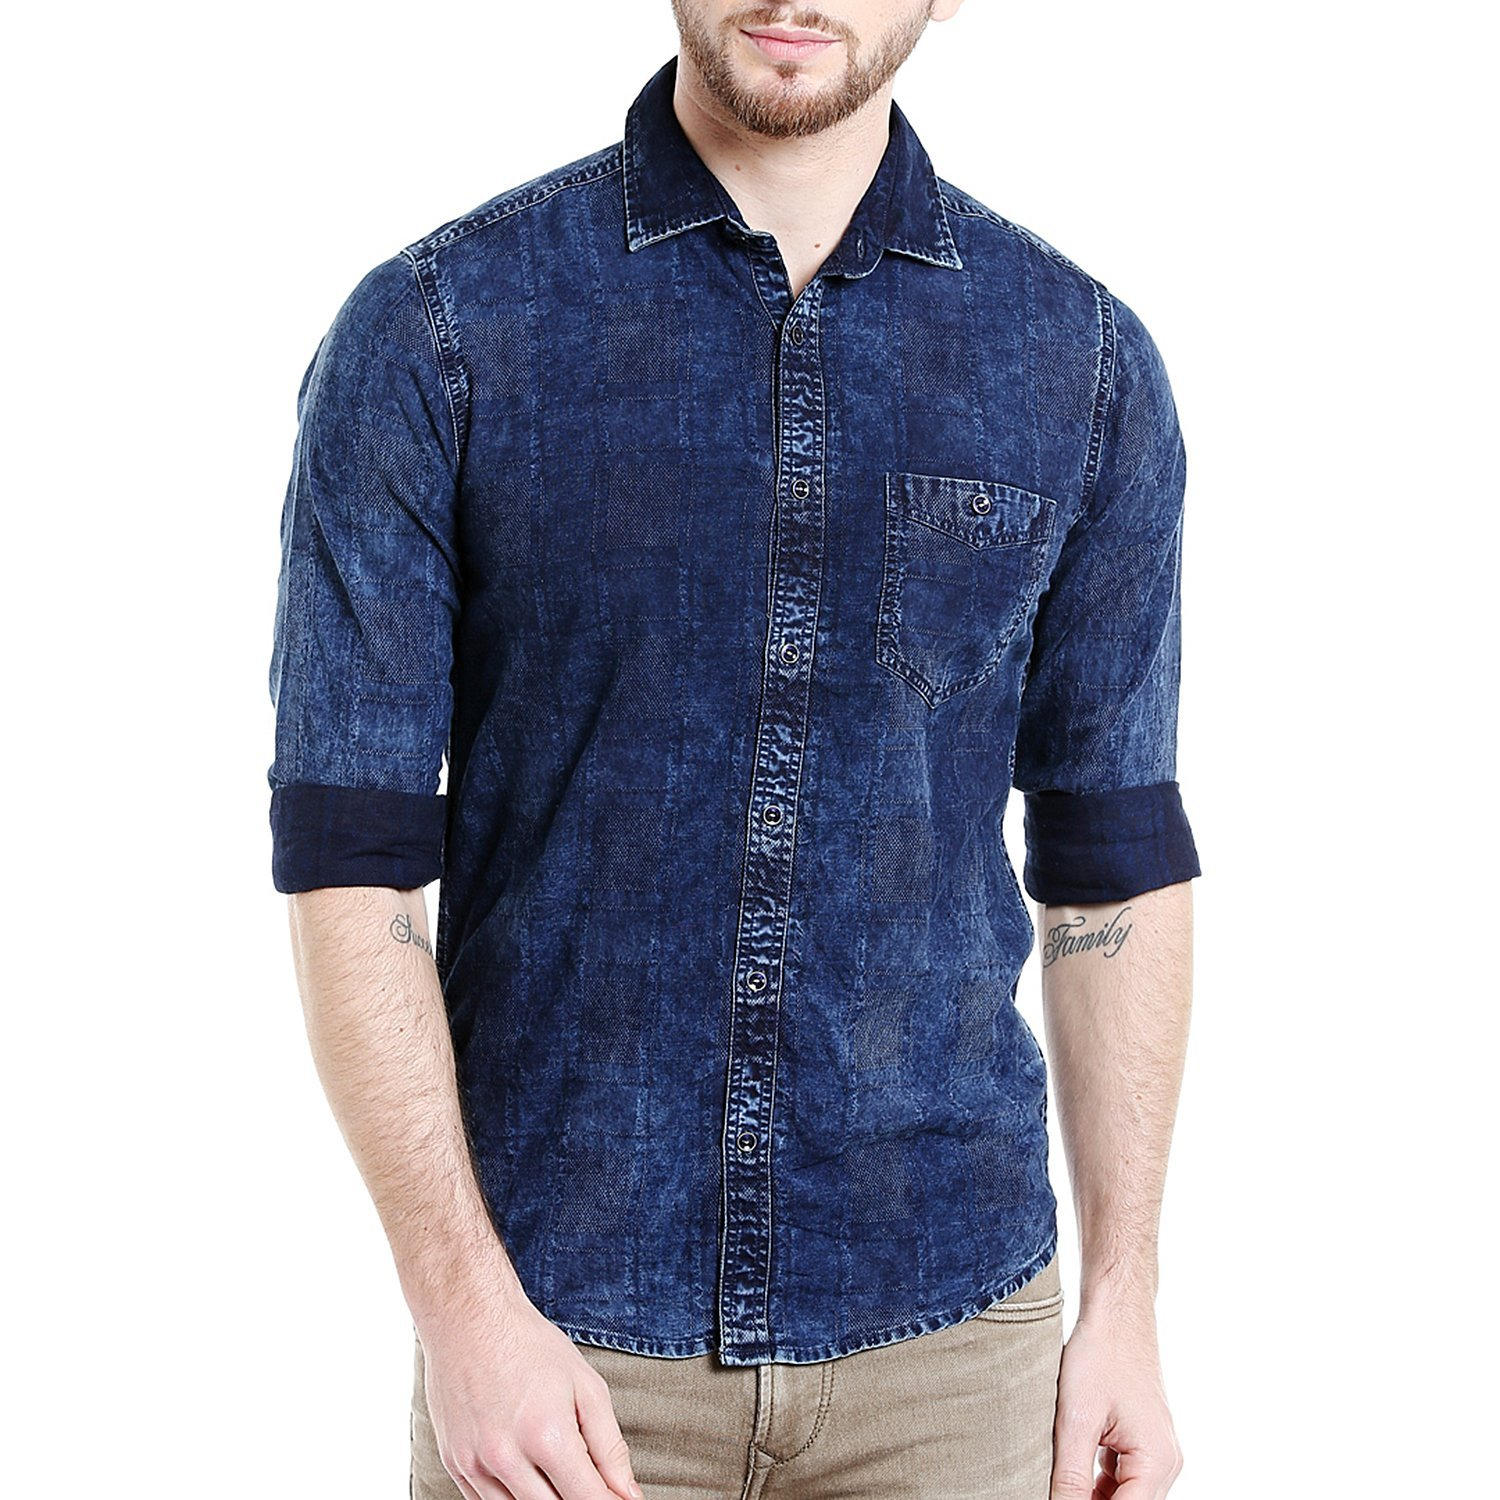 Buy Online Denim Style Cotton Shirt Amazon